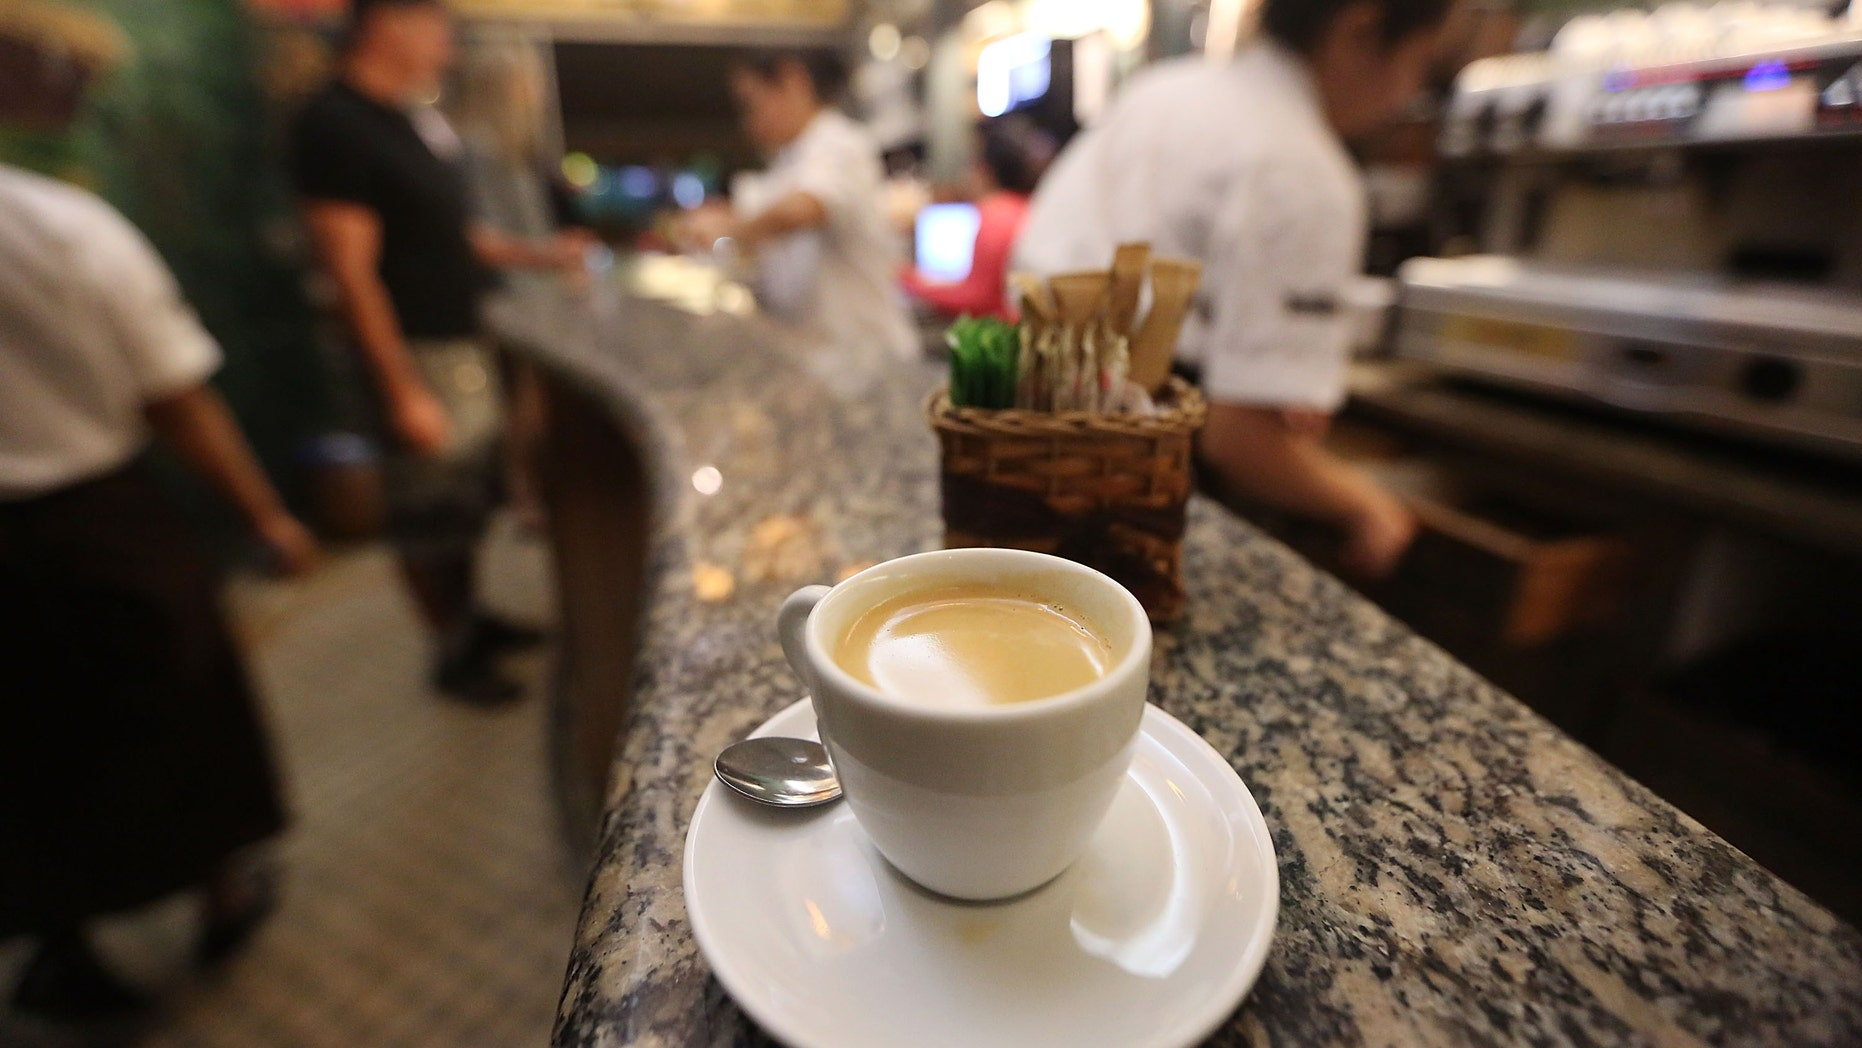 RIO DE JANEIRO, BRAZIL - AUGUST 28:  A cup of coffee made from Brazilian Arabica coffee beans sits in a coffee shop on August 28, 2014 in Rio de Janeiro, Brazil. Arabica coffee prices have been surging this year following one of the worst droughts in decades for coffee makers in Brazil. Brazil produces more coffee than any other country.  (Photo Illustration by Mario Tama/Getty Images)